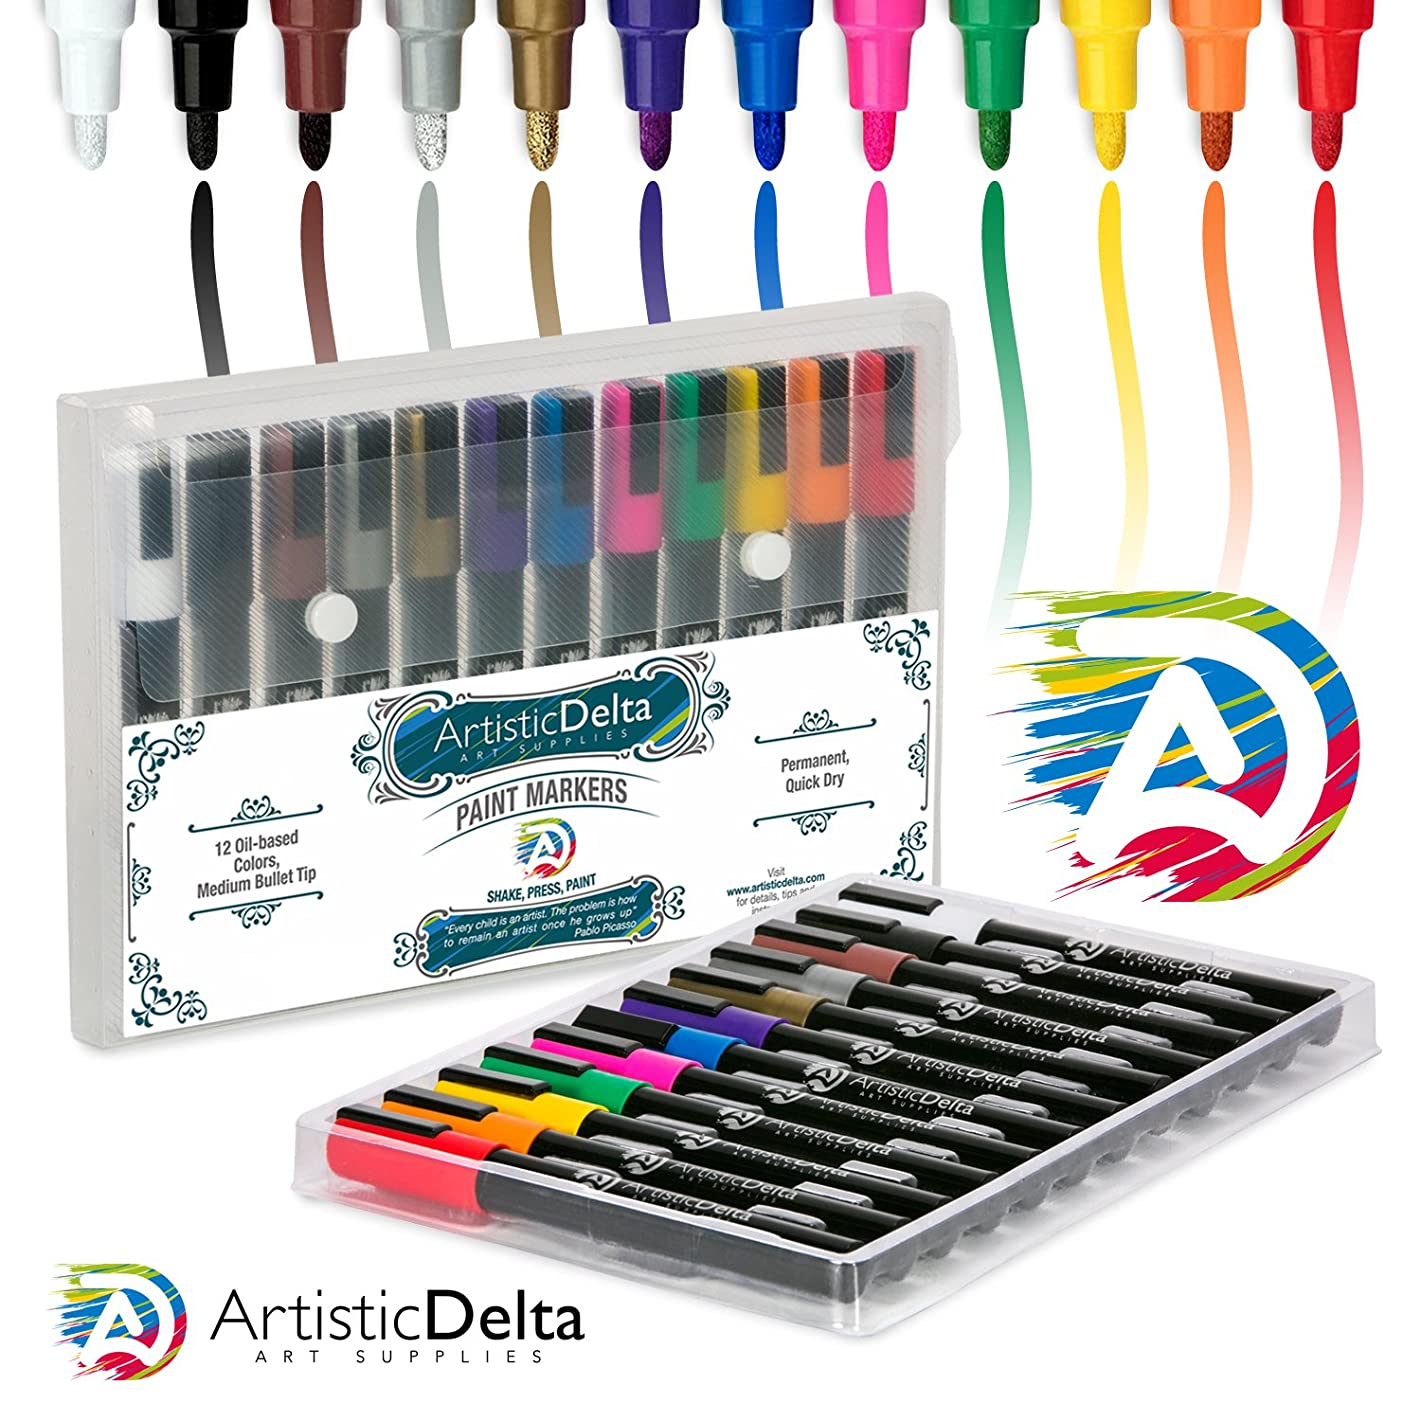 Paint Markers by Artistic Delta - Set of 12 Medium Point Oil-based Art Pens - Assorted Quick-Dry Opaque Colors with Matte Finish - Durable Case - For Use on Glass, Rock, Wood, Ceramic, Plastic, Metal